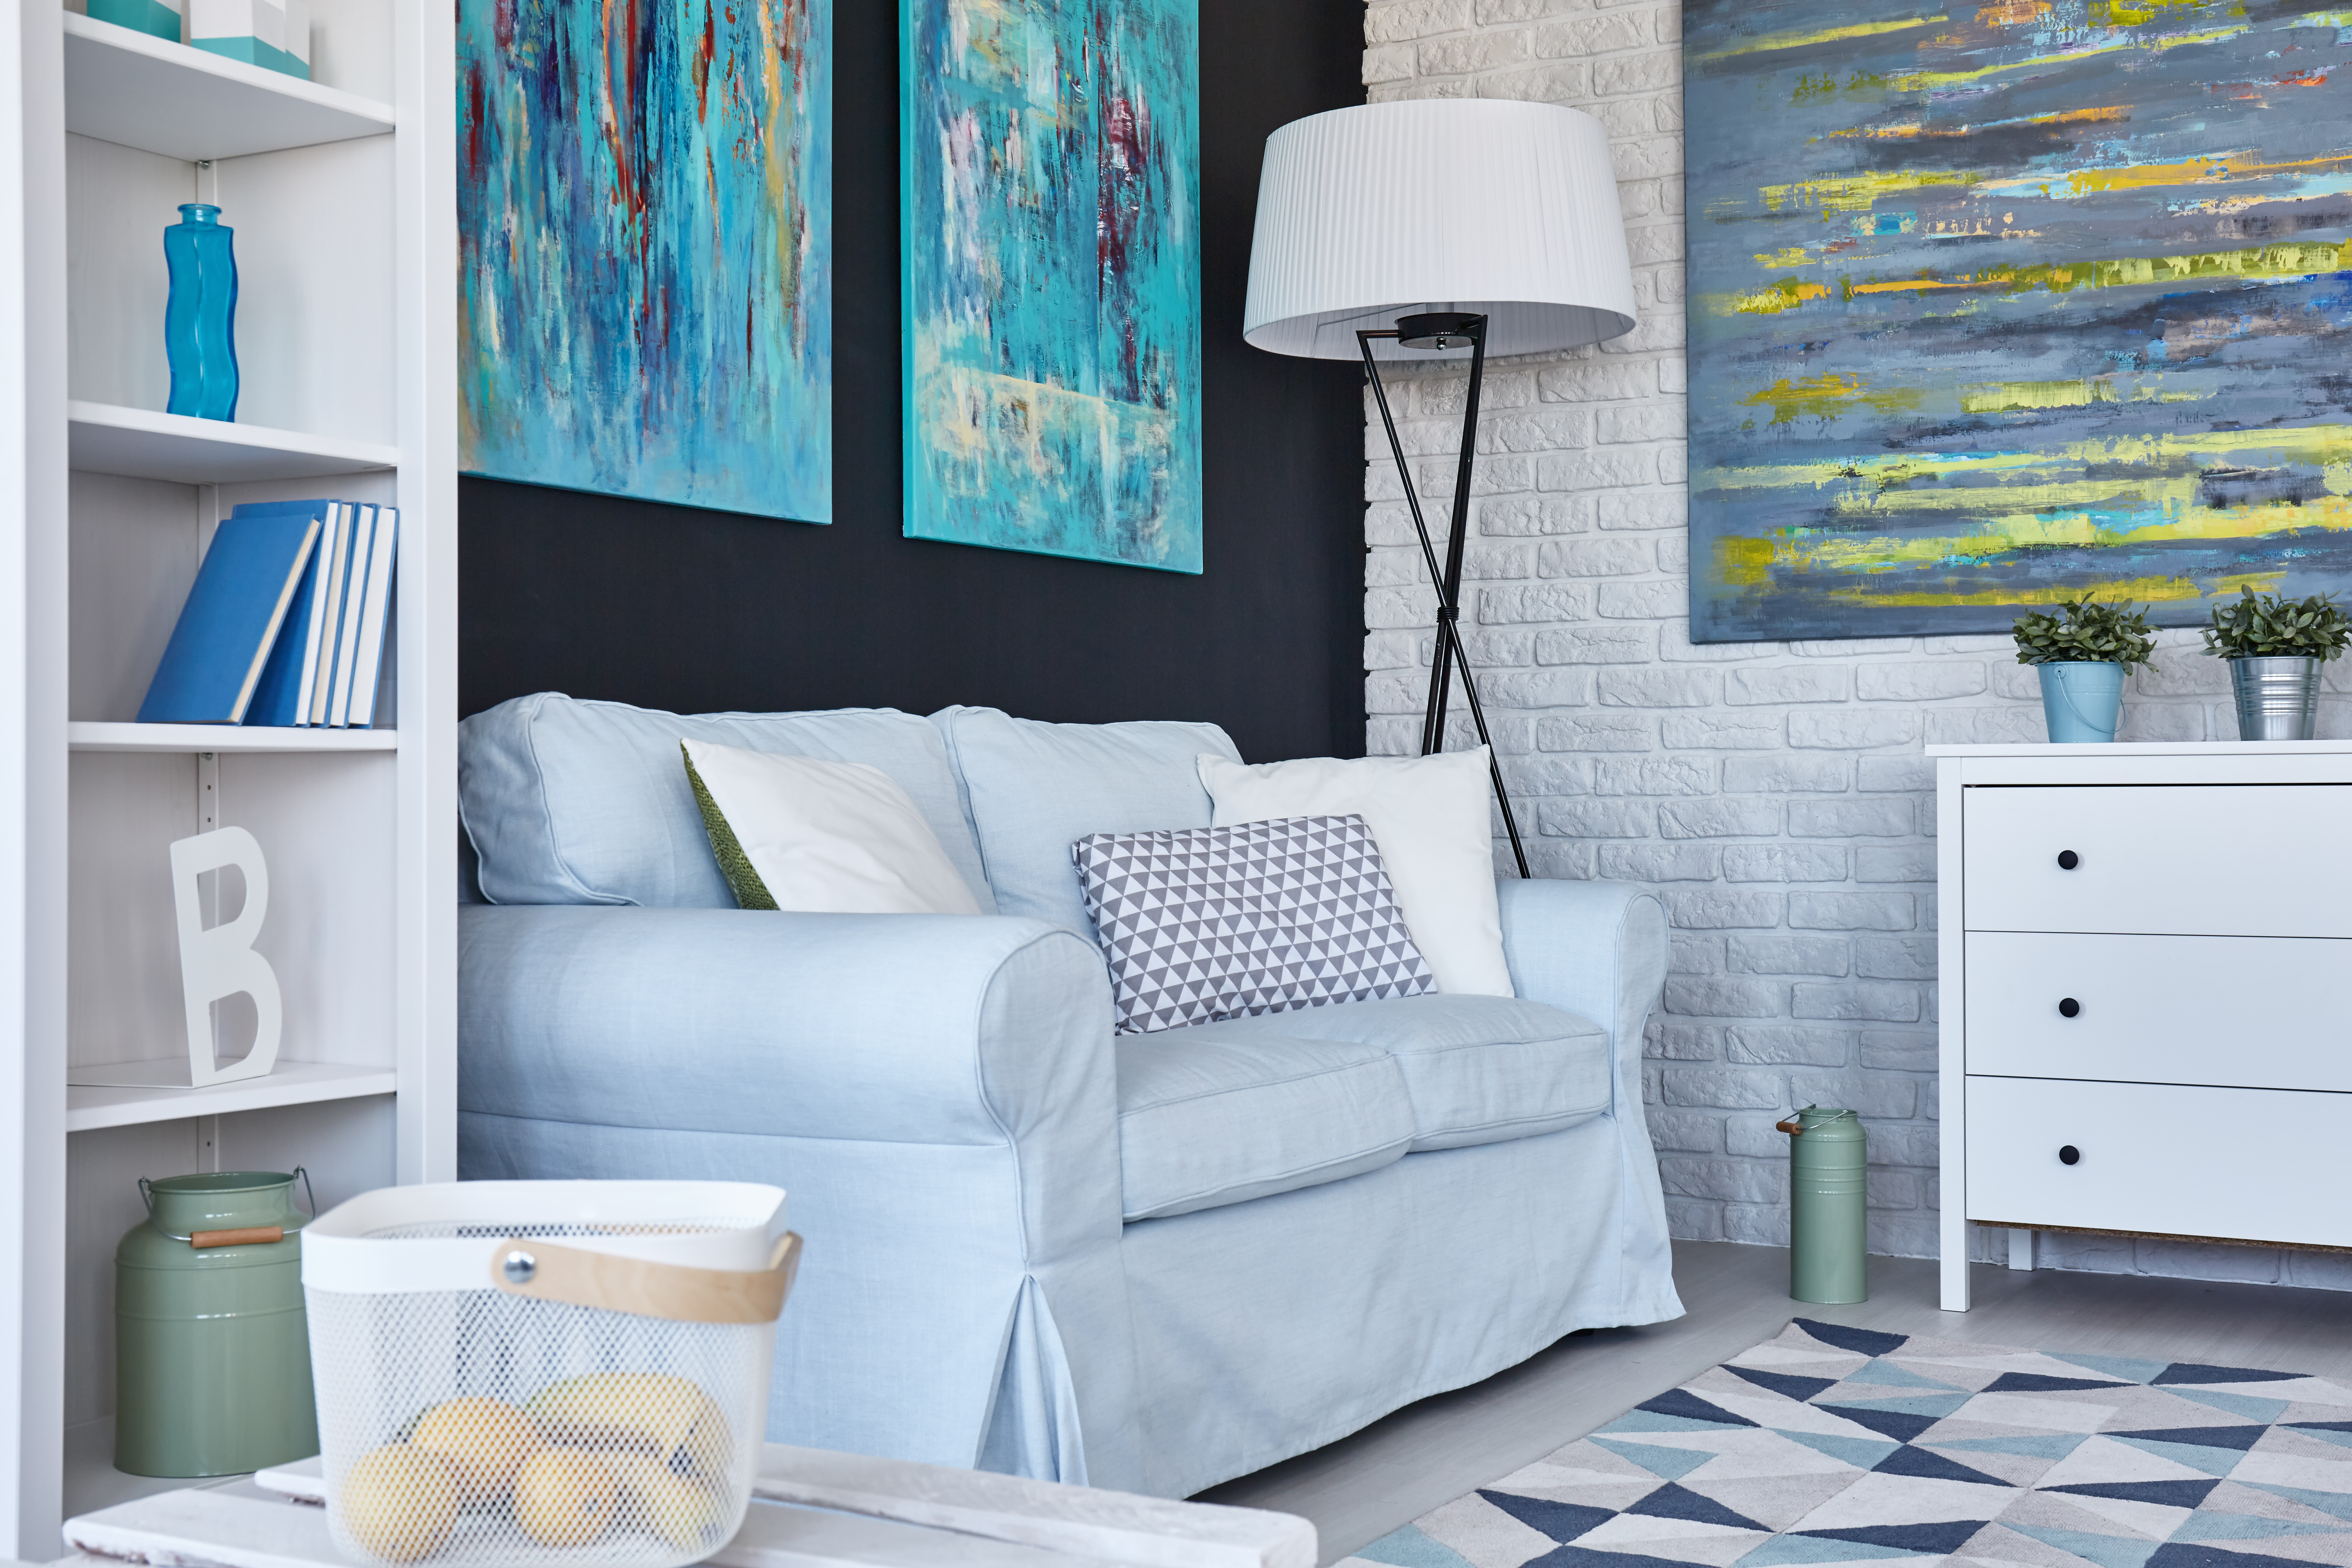 5 Wall Painting Ideas for Living Room to Make It Look Classy